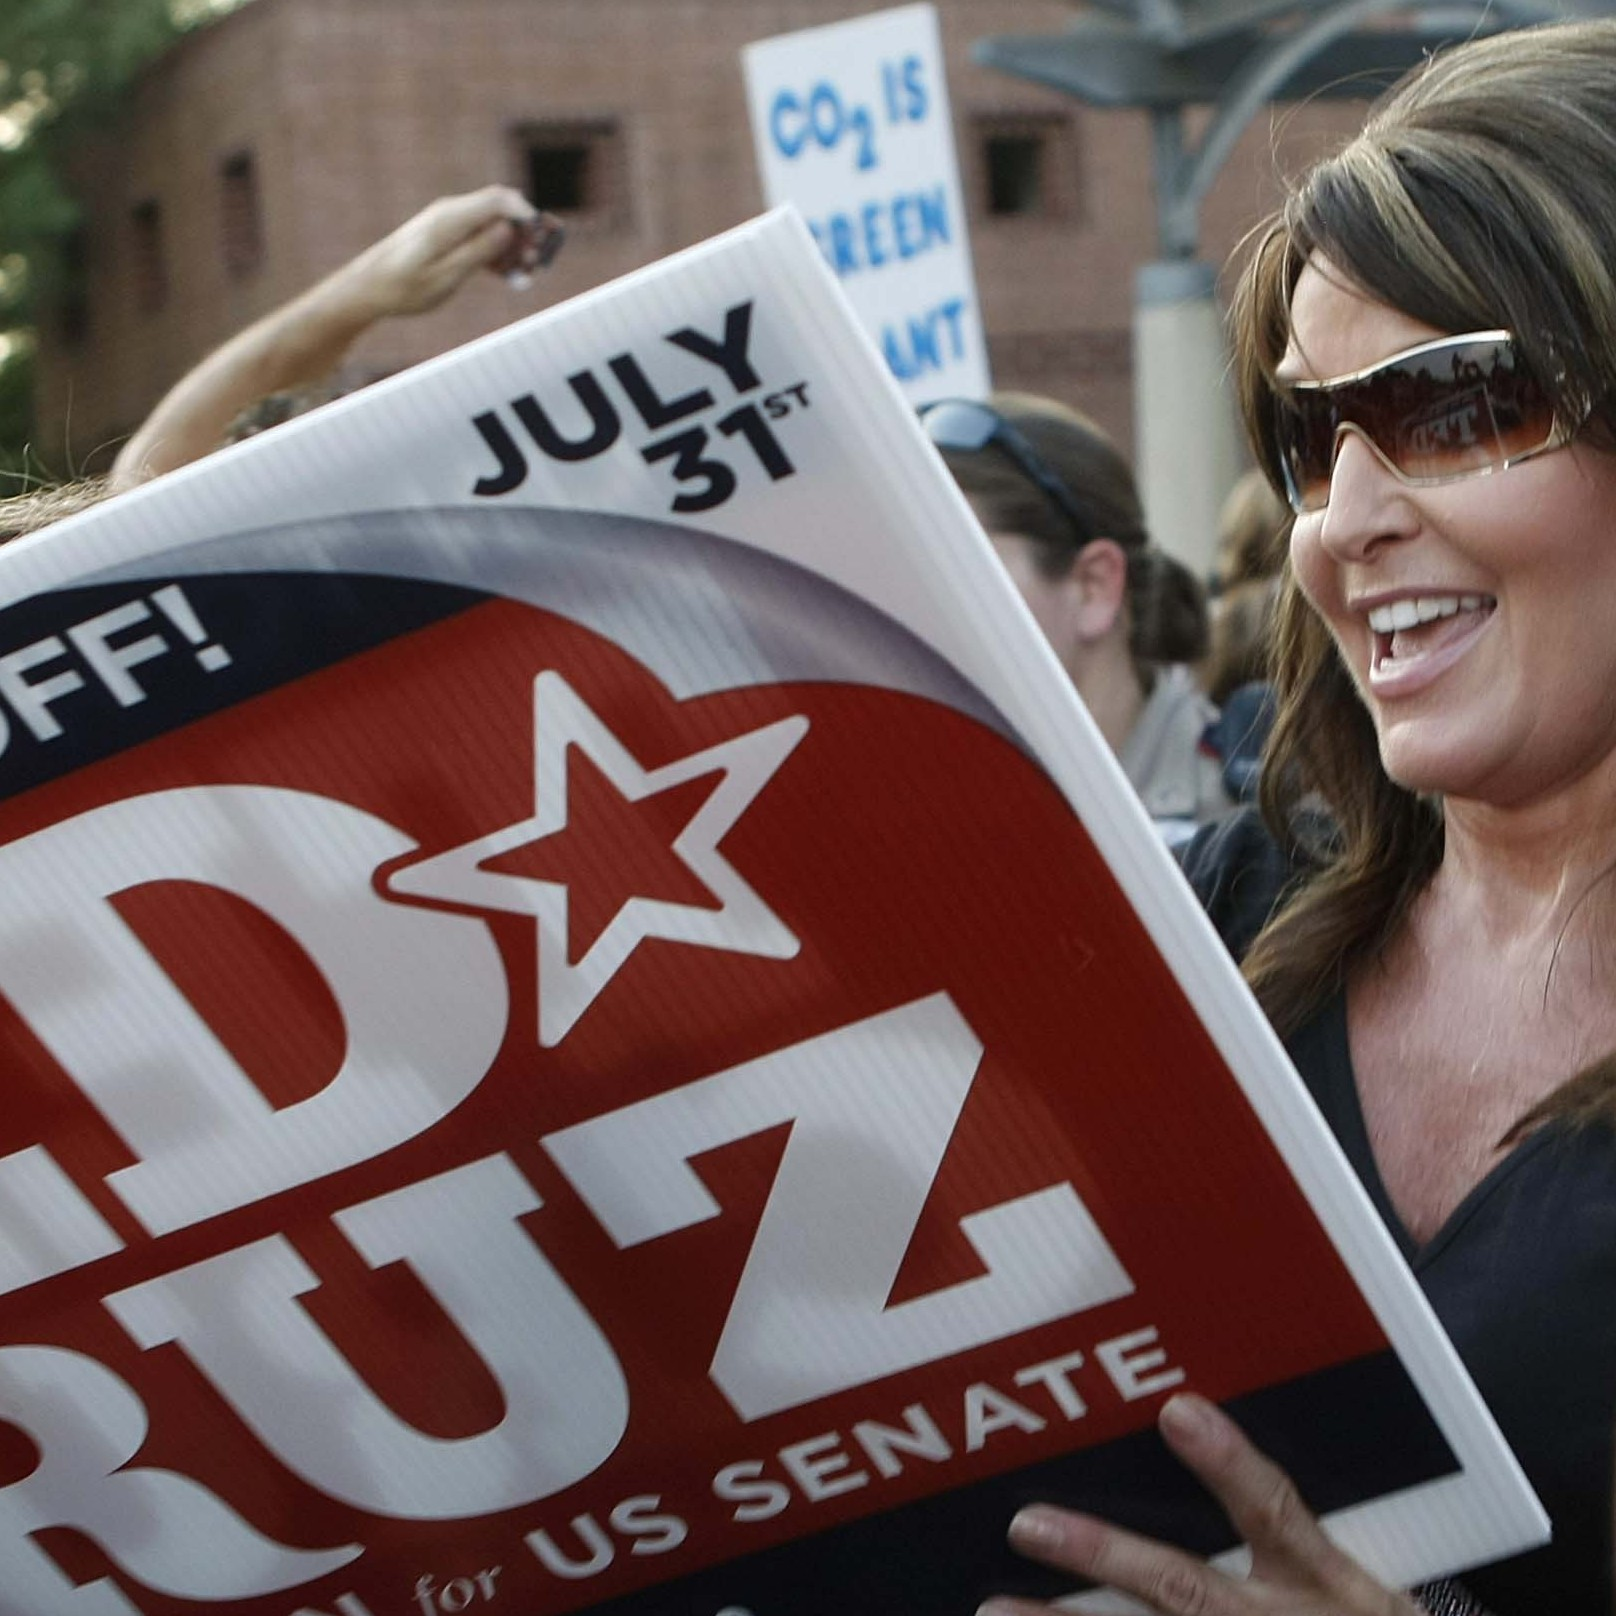 After speaking in support of Texas Senate GOP candidate Ted Cruz, Sarah Palin signed autographs at a rally on July 27 in The Woodlands, Texas.